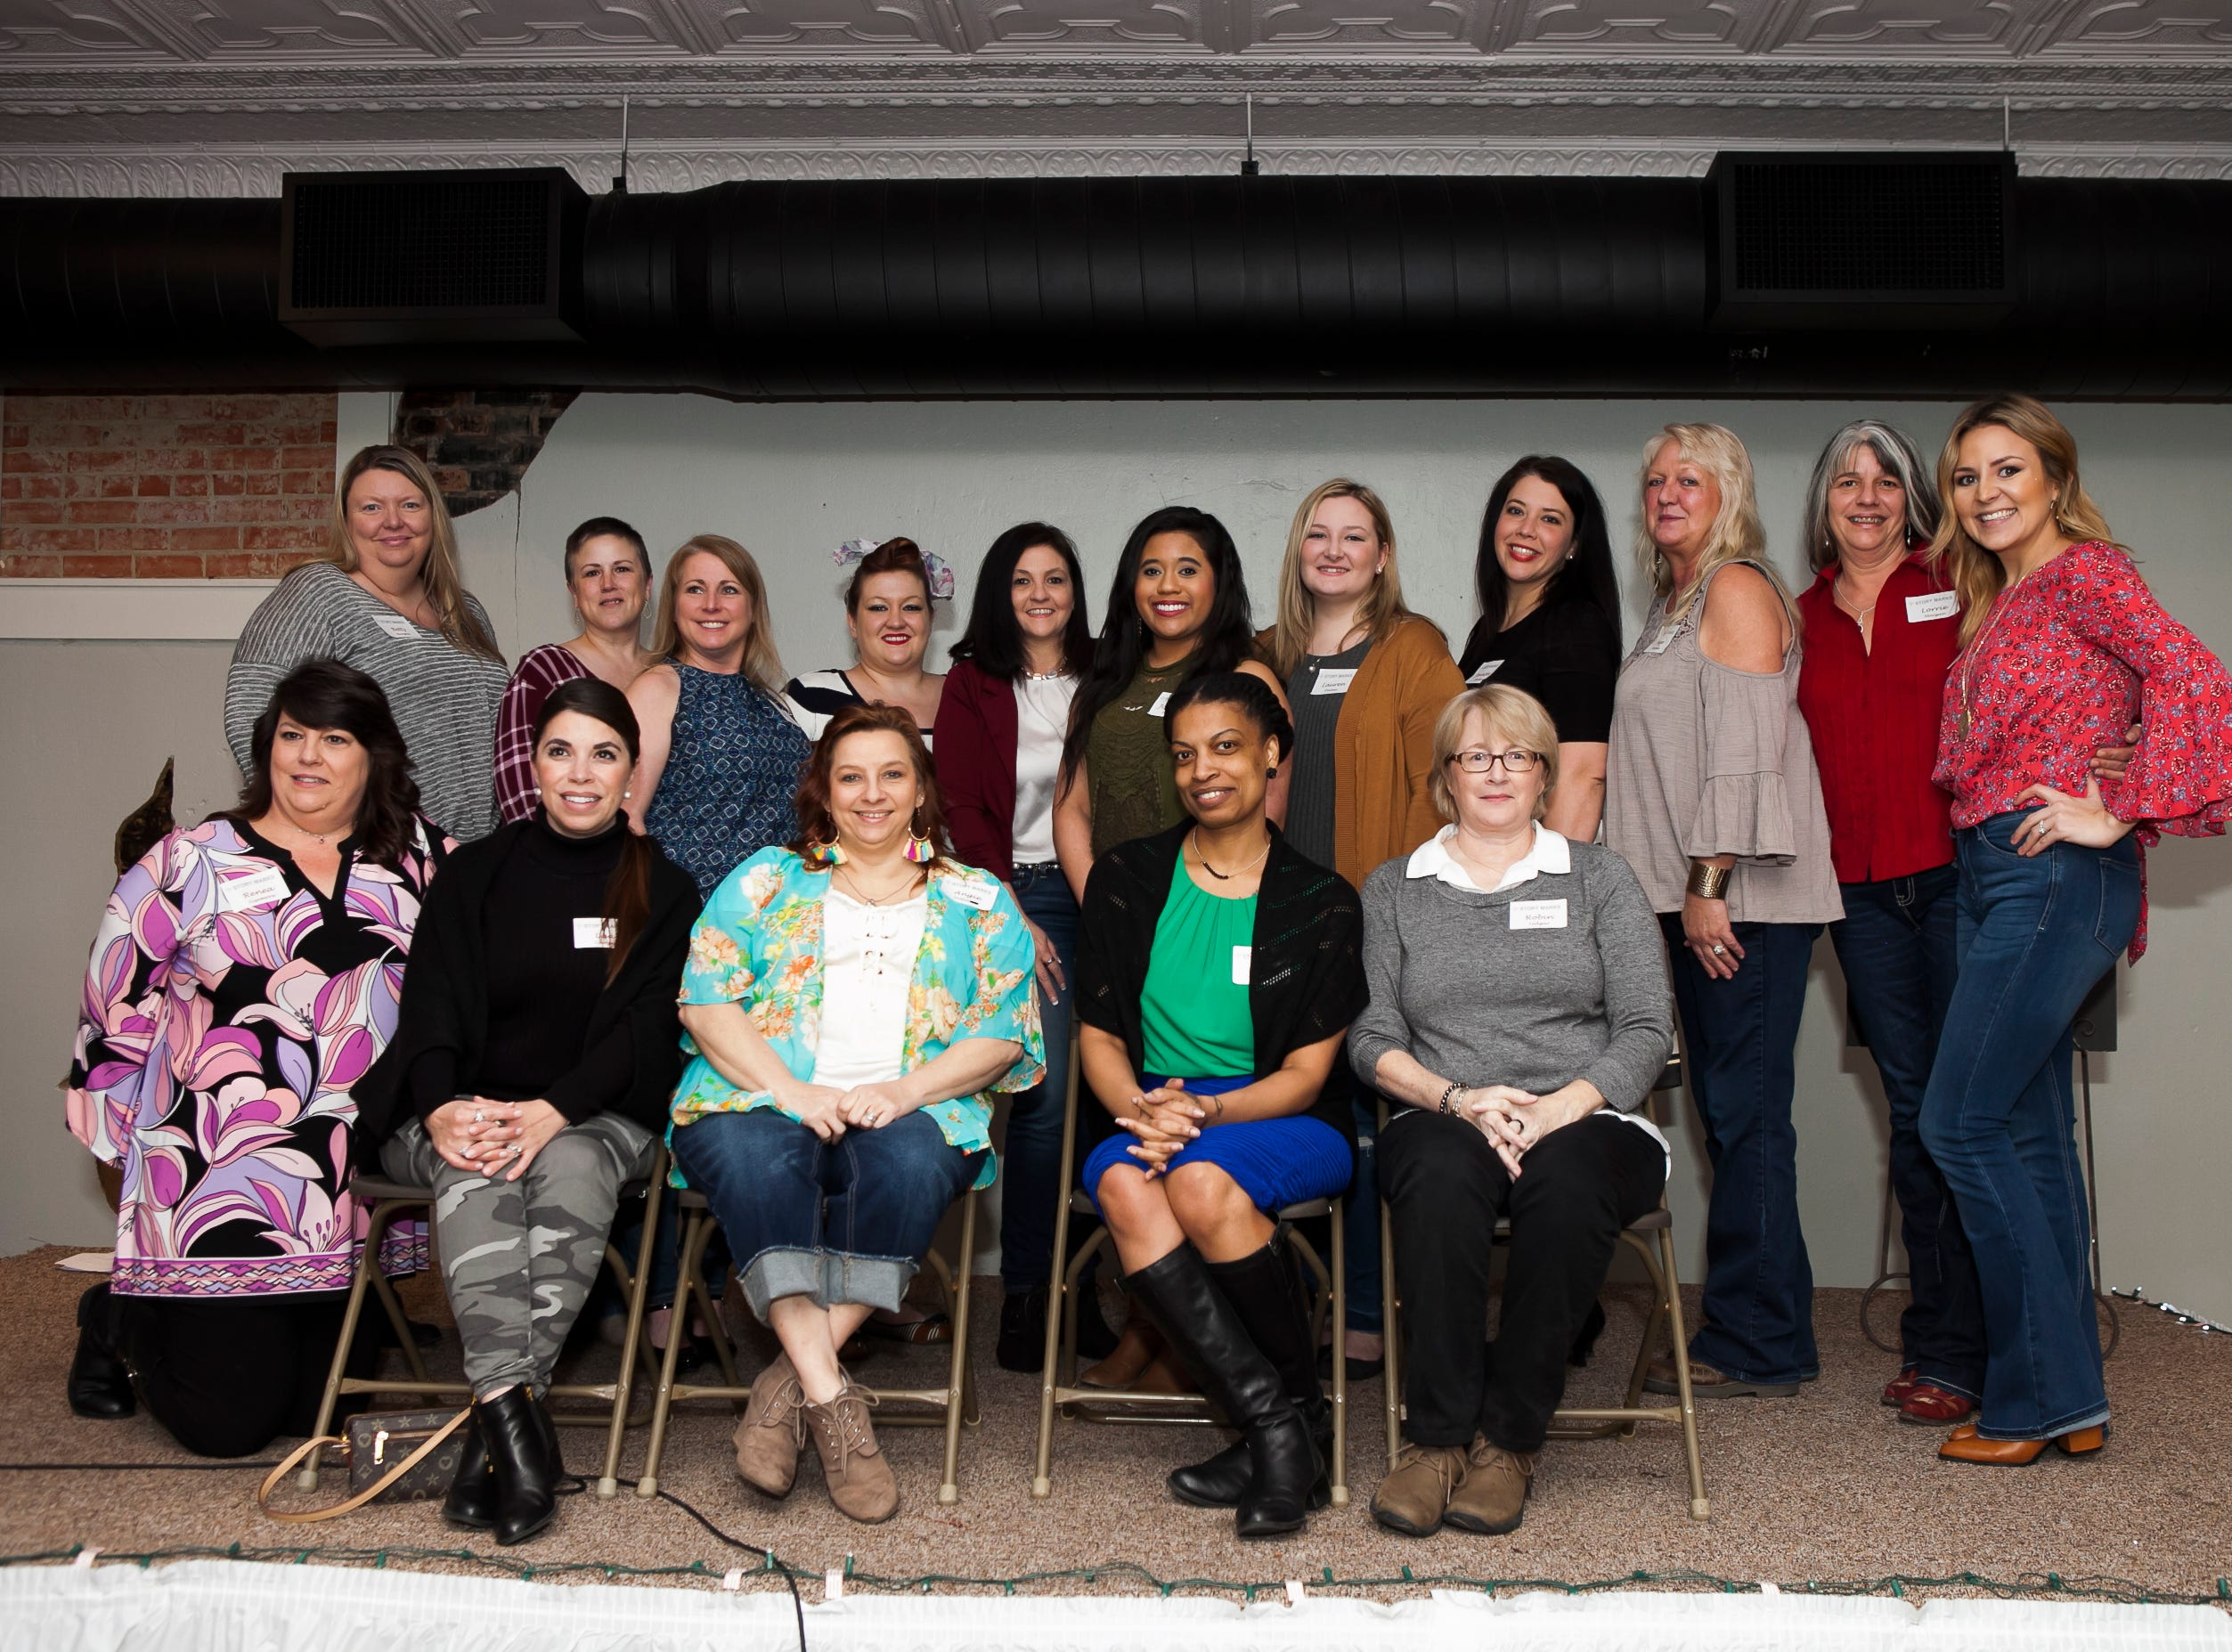 """Story Marks,"" an event highlighting women who have tattoos and the stories behind them was held Friday, Feb. 1, 2019 at Willowbench Meeting Place in Pineville. ""We've recruited 18 women and their stories behind their tattoos,"" said Belle Chatelain, one of the event organizers. Chatelain said Story Marks is a division of Stonecroft, a non-profit ministry.  ""These are events that have been around the nation for the last - probably three years,"" explained Chatelain. ""They've been  in about 30 states. And we're the first to bring one to Louisiana."" The women and their tattoos were photographed by local photographer Susan Merritt Stevison. The photographs of the women, the tattoos and their stories were on display. ""We've been planning this for months,"" said Chatelain. The event is about building community, crossing cultural, religious denominations, socioeconomic differences and boundaries, she explained. ""To bring women together because we are a community of women and our message is that your story matters,"" she added. ""That every woman has a story. We come together and share our stories we'll see how much we have in common versus how much that we're different."" The event emcee, Wendi Bryant, is leading a community group call Themes at the Rapides Parish Library on Wednesday nights for four weeks to teach women how to write their life story. Molly Townsend dcoumented Friday's event. Tammie Thames, owner of Willowbench, donated the meeting space for the event."